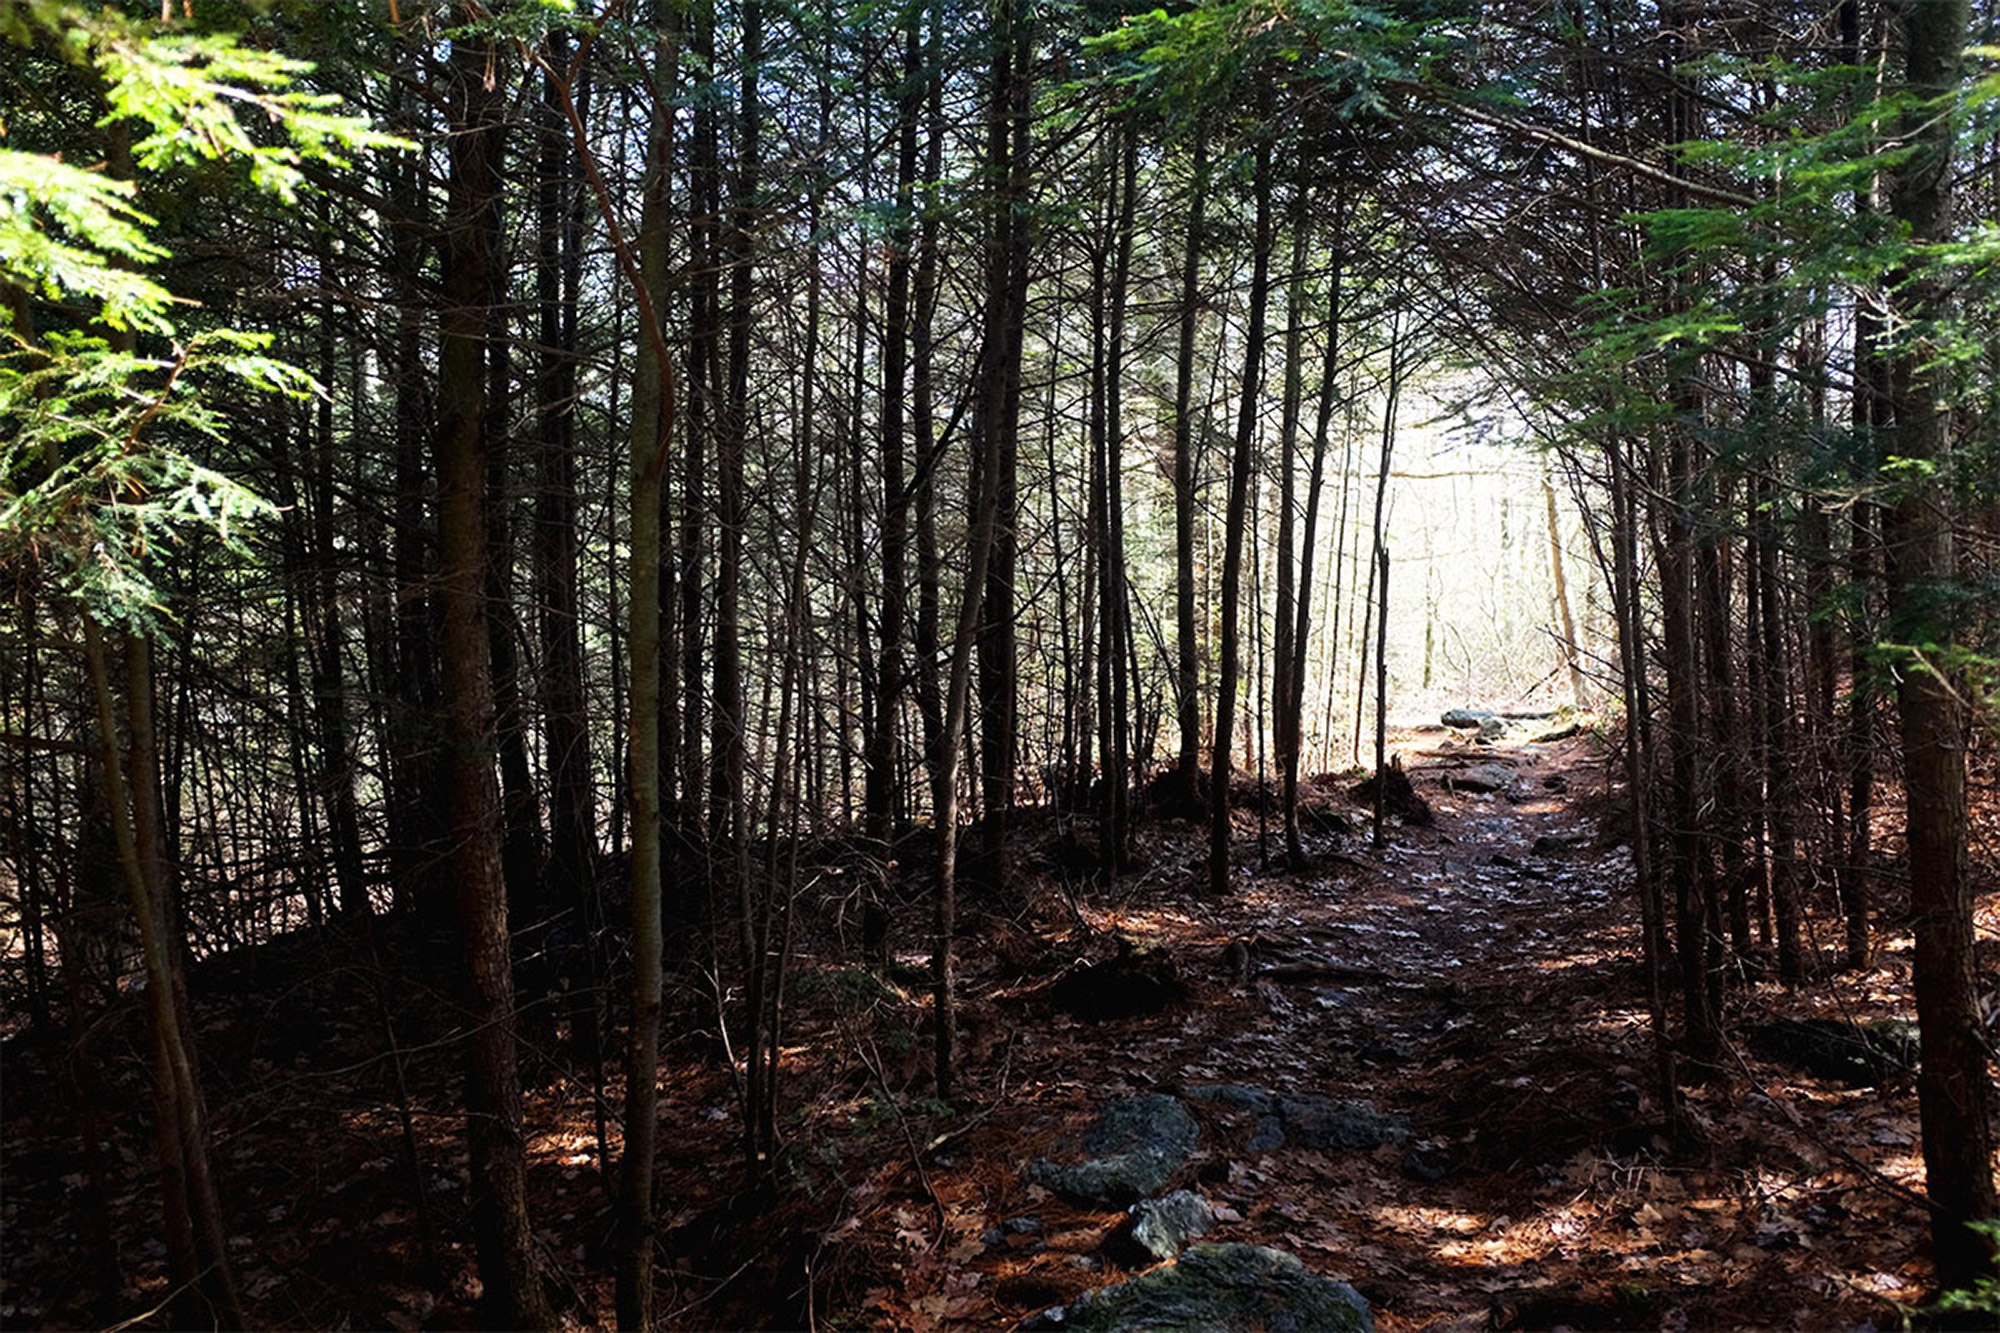 The warmer lowlands and foothills can offer a reprieve from the snow and ice of the northeast's mountains. | Credit: John Lepak